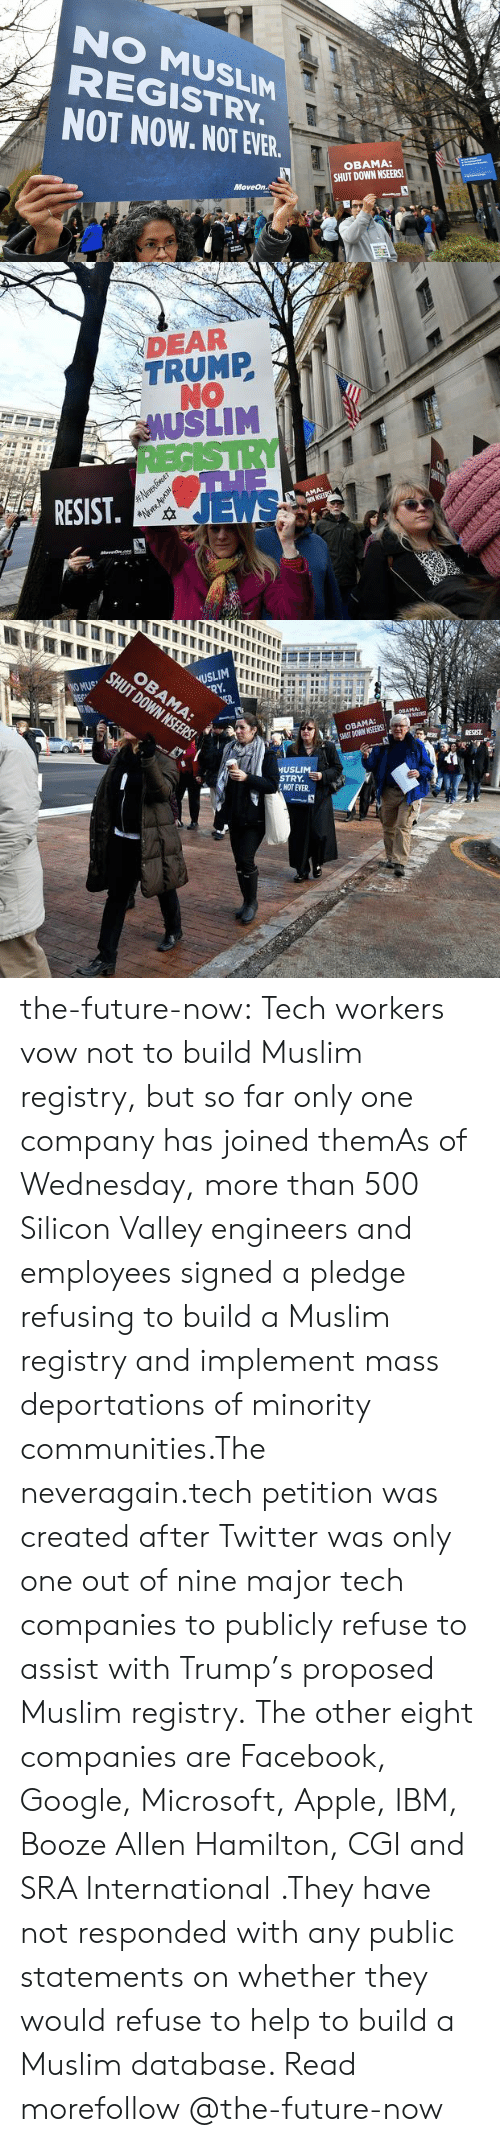 ibm: NO MUSLIM  REGISTRY  NOT NOW. NOT EVER  OBAMA:  SHUT DOWN NSEERS!  MoveOn.  cVICA   DEAR  TRUMP  NO  AUSLIM  RESIST  JEWS   USLIM  VER.  OBAMA:  SHUT DOWN NSEERS!  MUSLI  STRY  艺NOT EVER. the-future-now:  Tech workers vow not to build Muslim registry, but so far only one company has joined themAs of Wednesday, more than 500 Silicon Valley engineers and employees signed a pledge refusing  to build a Muslim registry and implement mass  deportations of minority communities.The neveragain.tech petition was created after Twitter was only one out of nine major tech companies  to publicly refuse to assist with Trump's proposed Muslim registry.  The other eight companies are Facebook, Google, Microsoft, Apple, IBM,  Booze Allen Hamilton, CGI and SRA International .They have not responded  with any public statements on whether they would refuse to help to build  a Muslim database. Read morefollow @the-future-now​